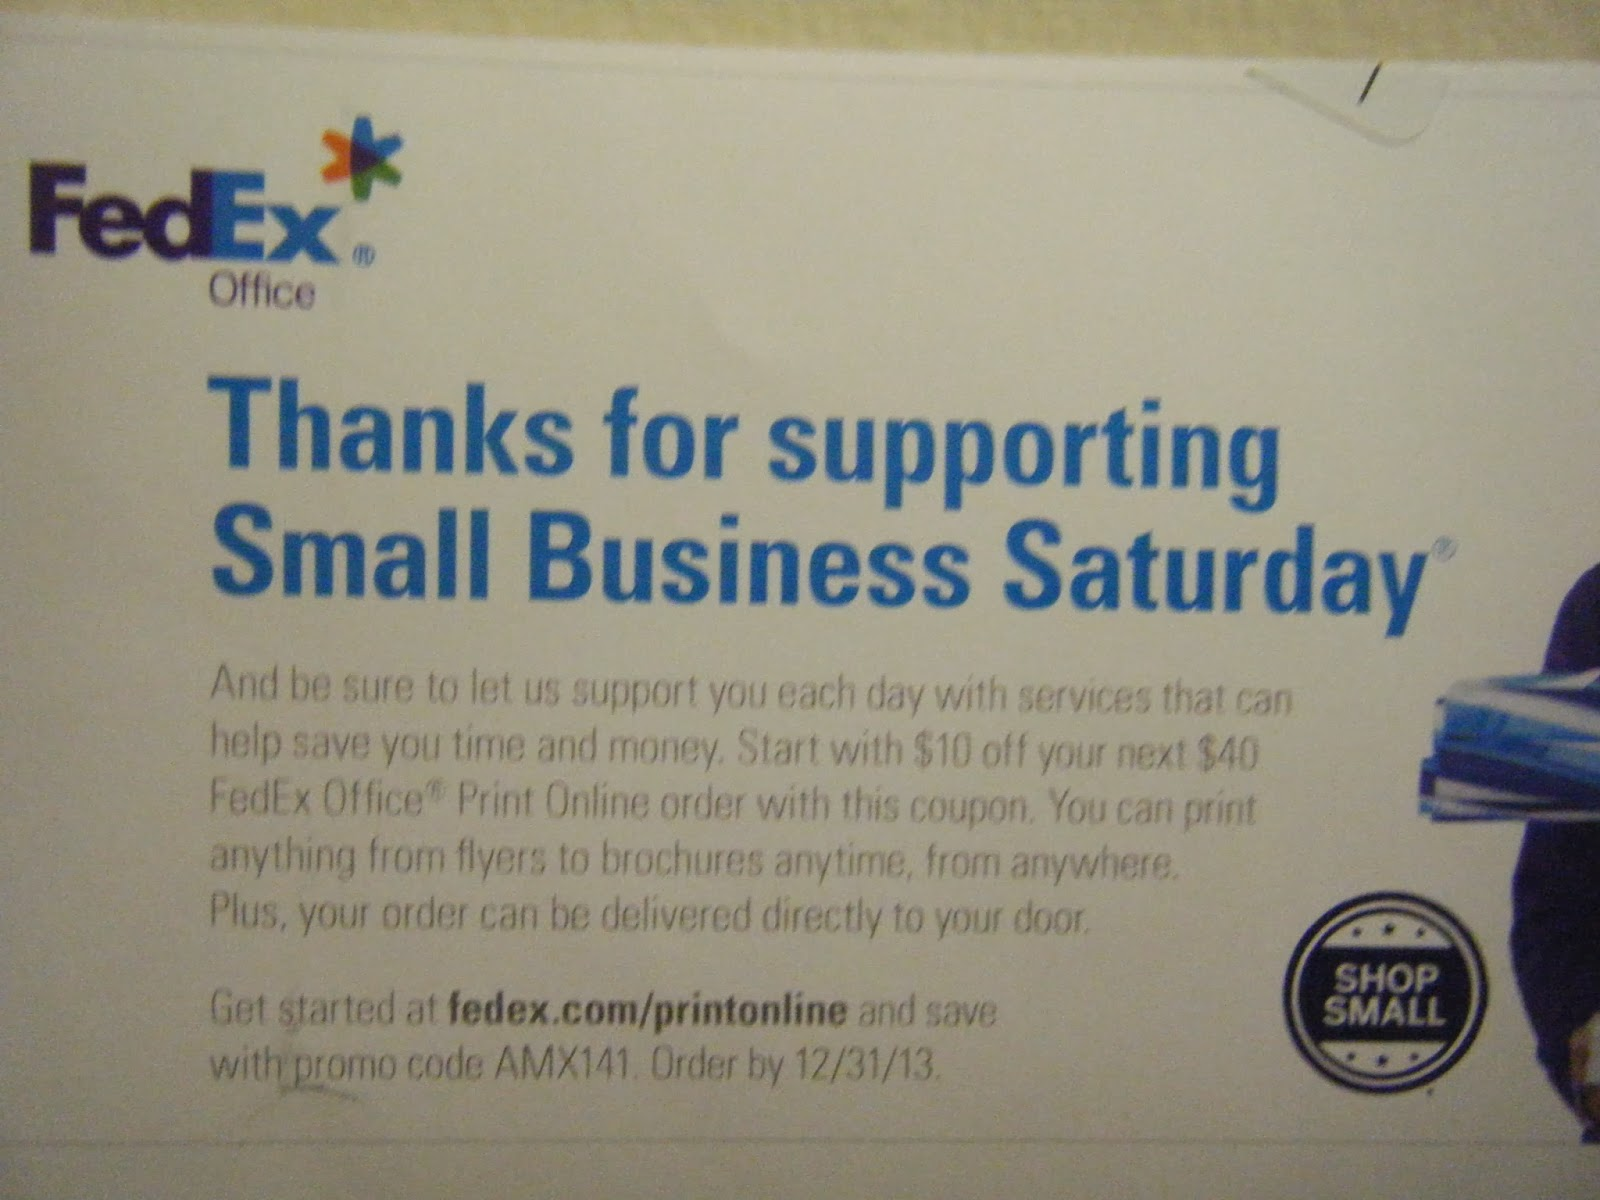 alfidi capital blog could fedex really be this clueless on coupons